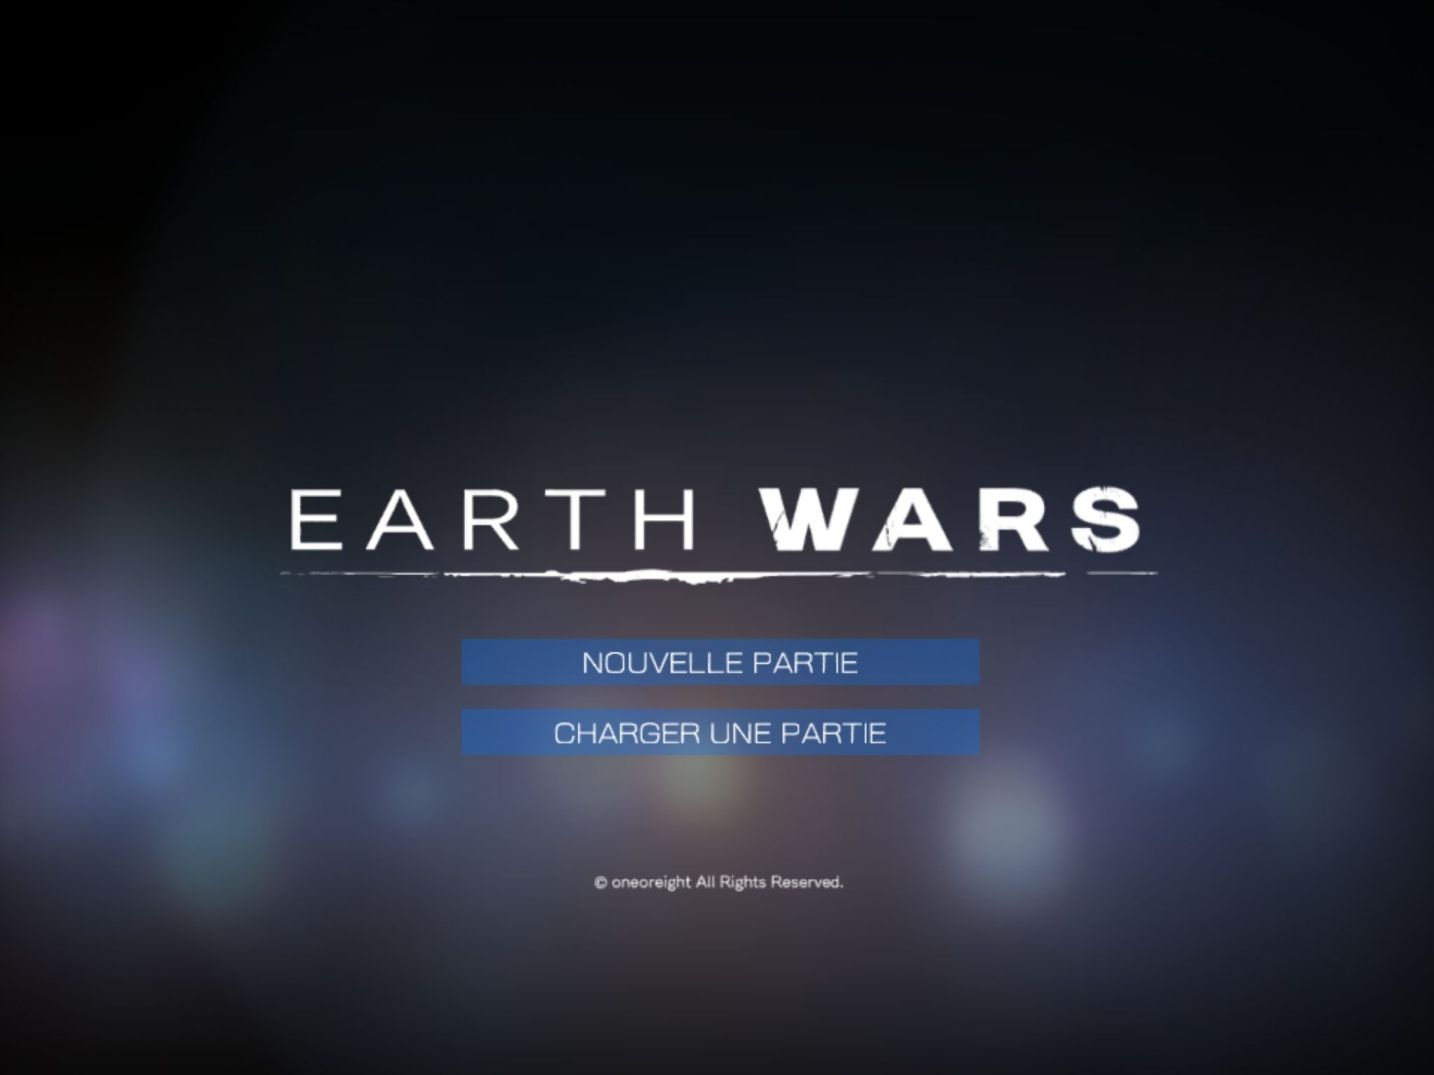 EARTH WARS (copie d'écran 1 sur iPhone / iPad)